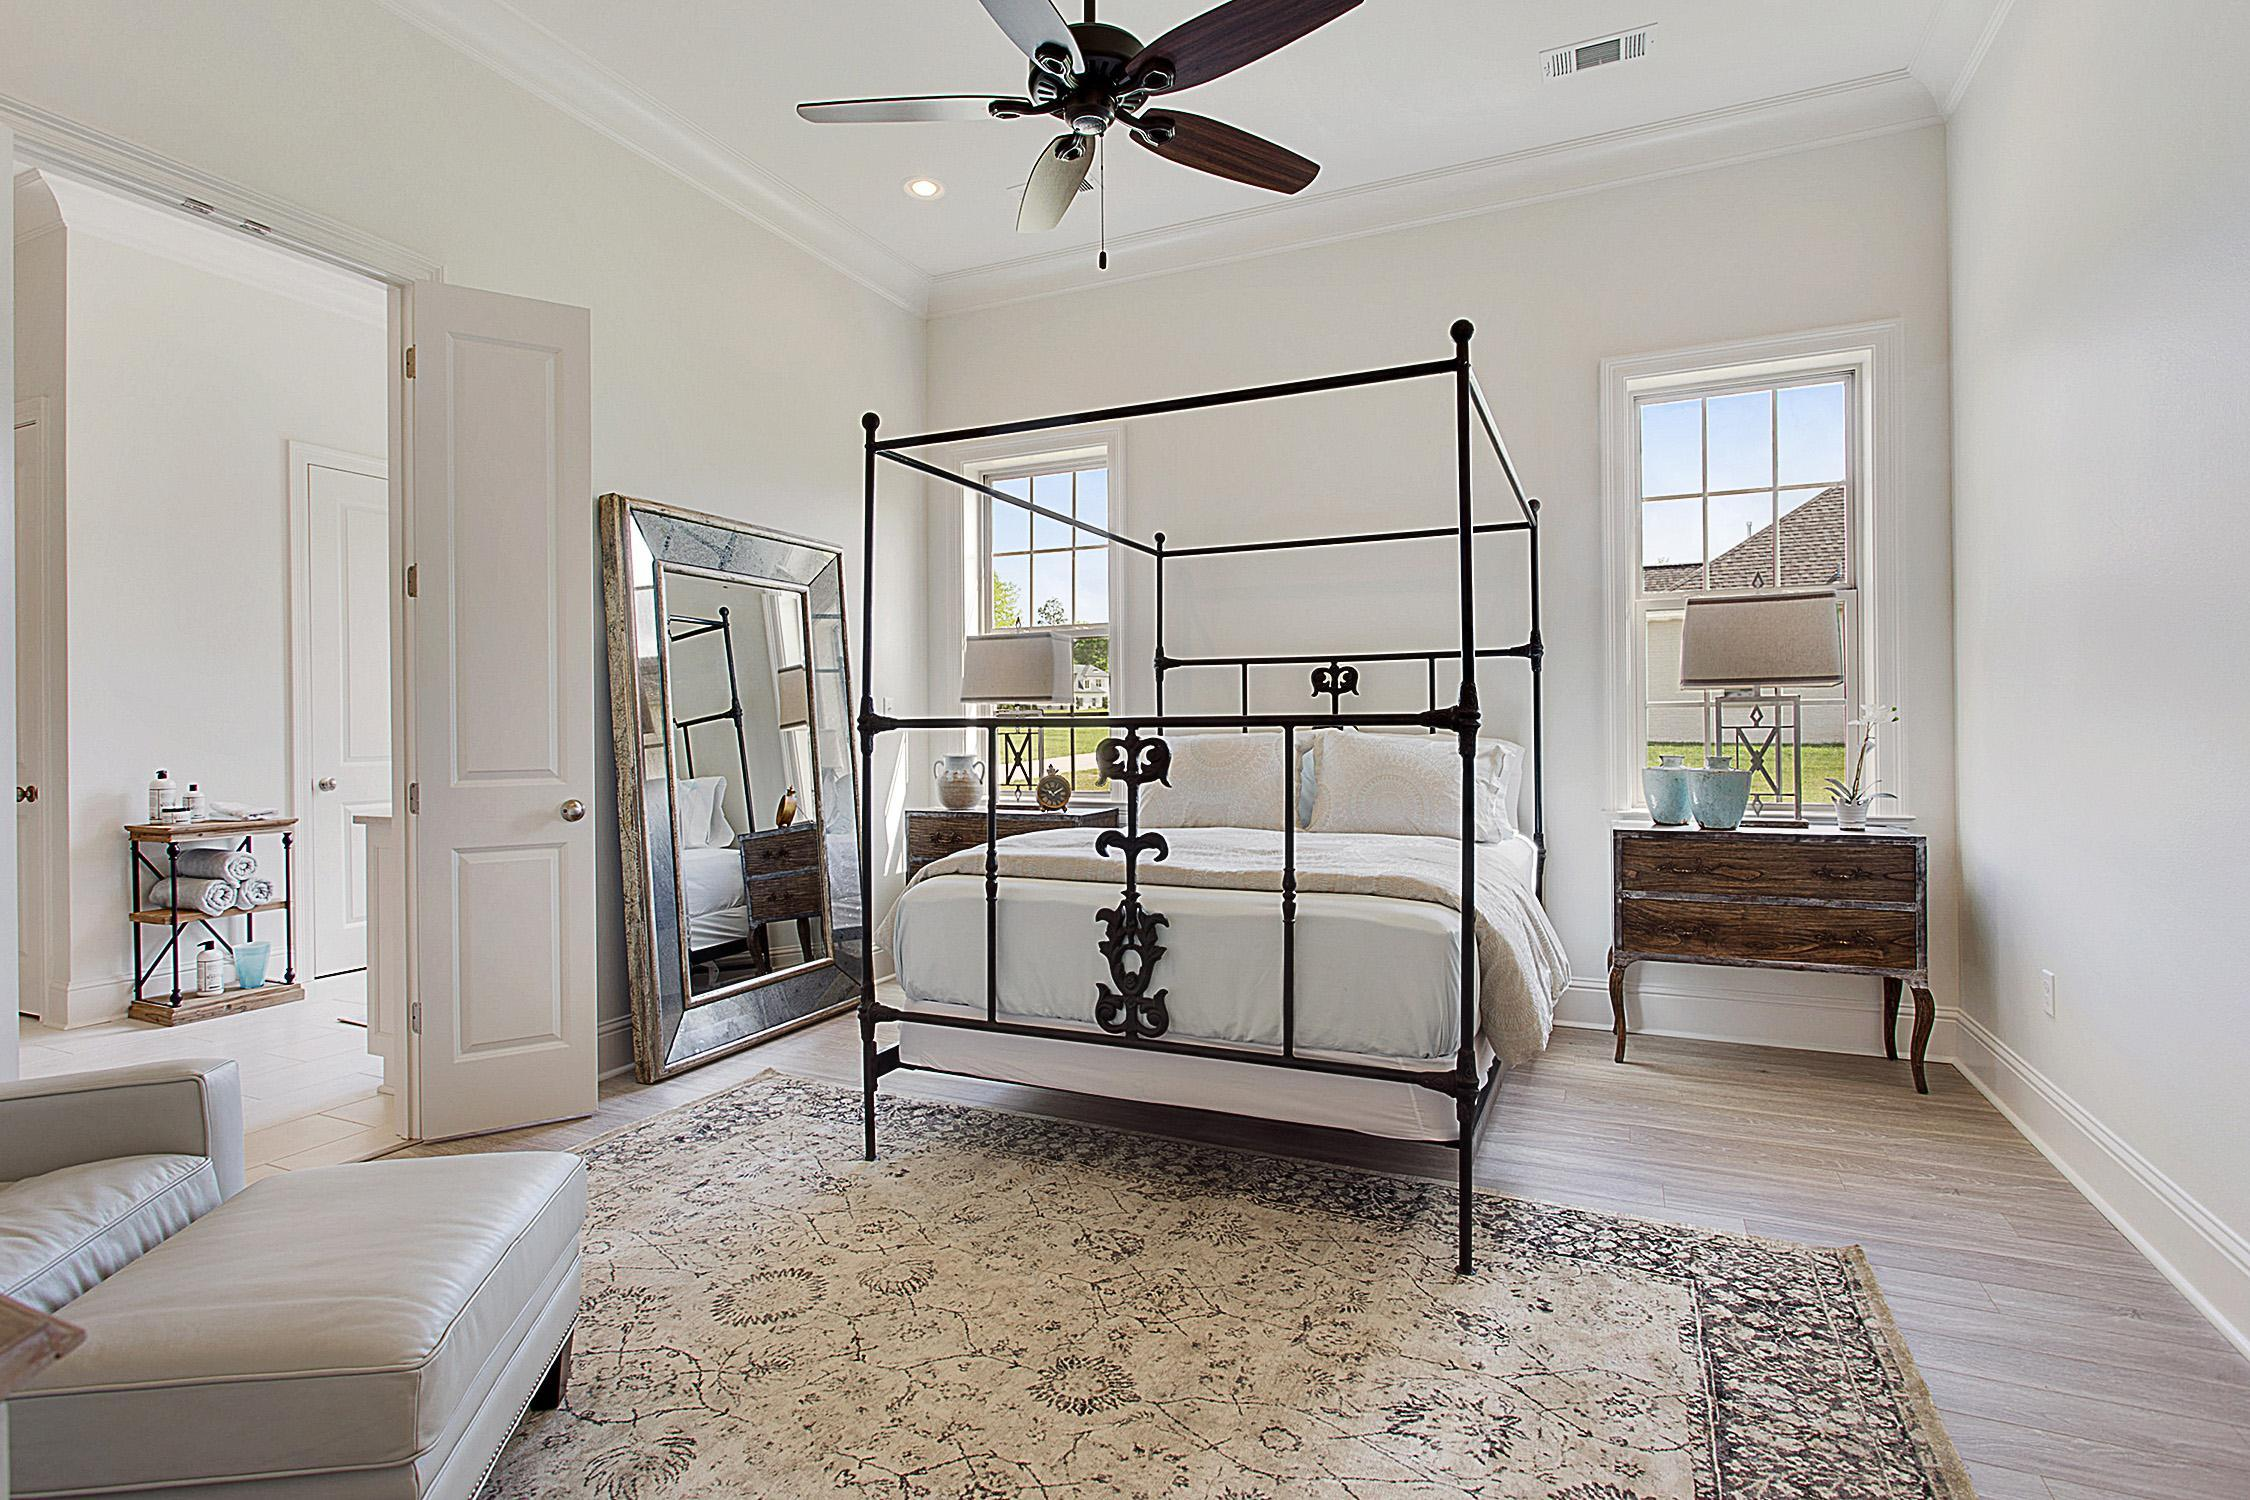 Bedroom featured in the Fountainbleau (3 Bed) By Highland Homes in New Orleans, LA